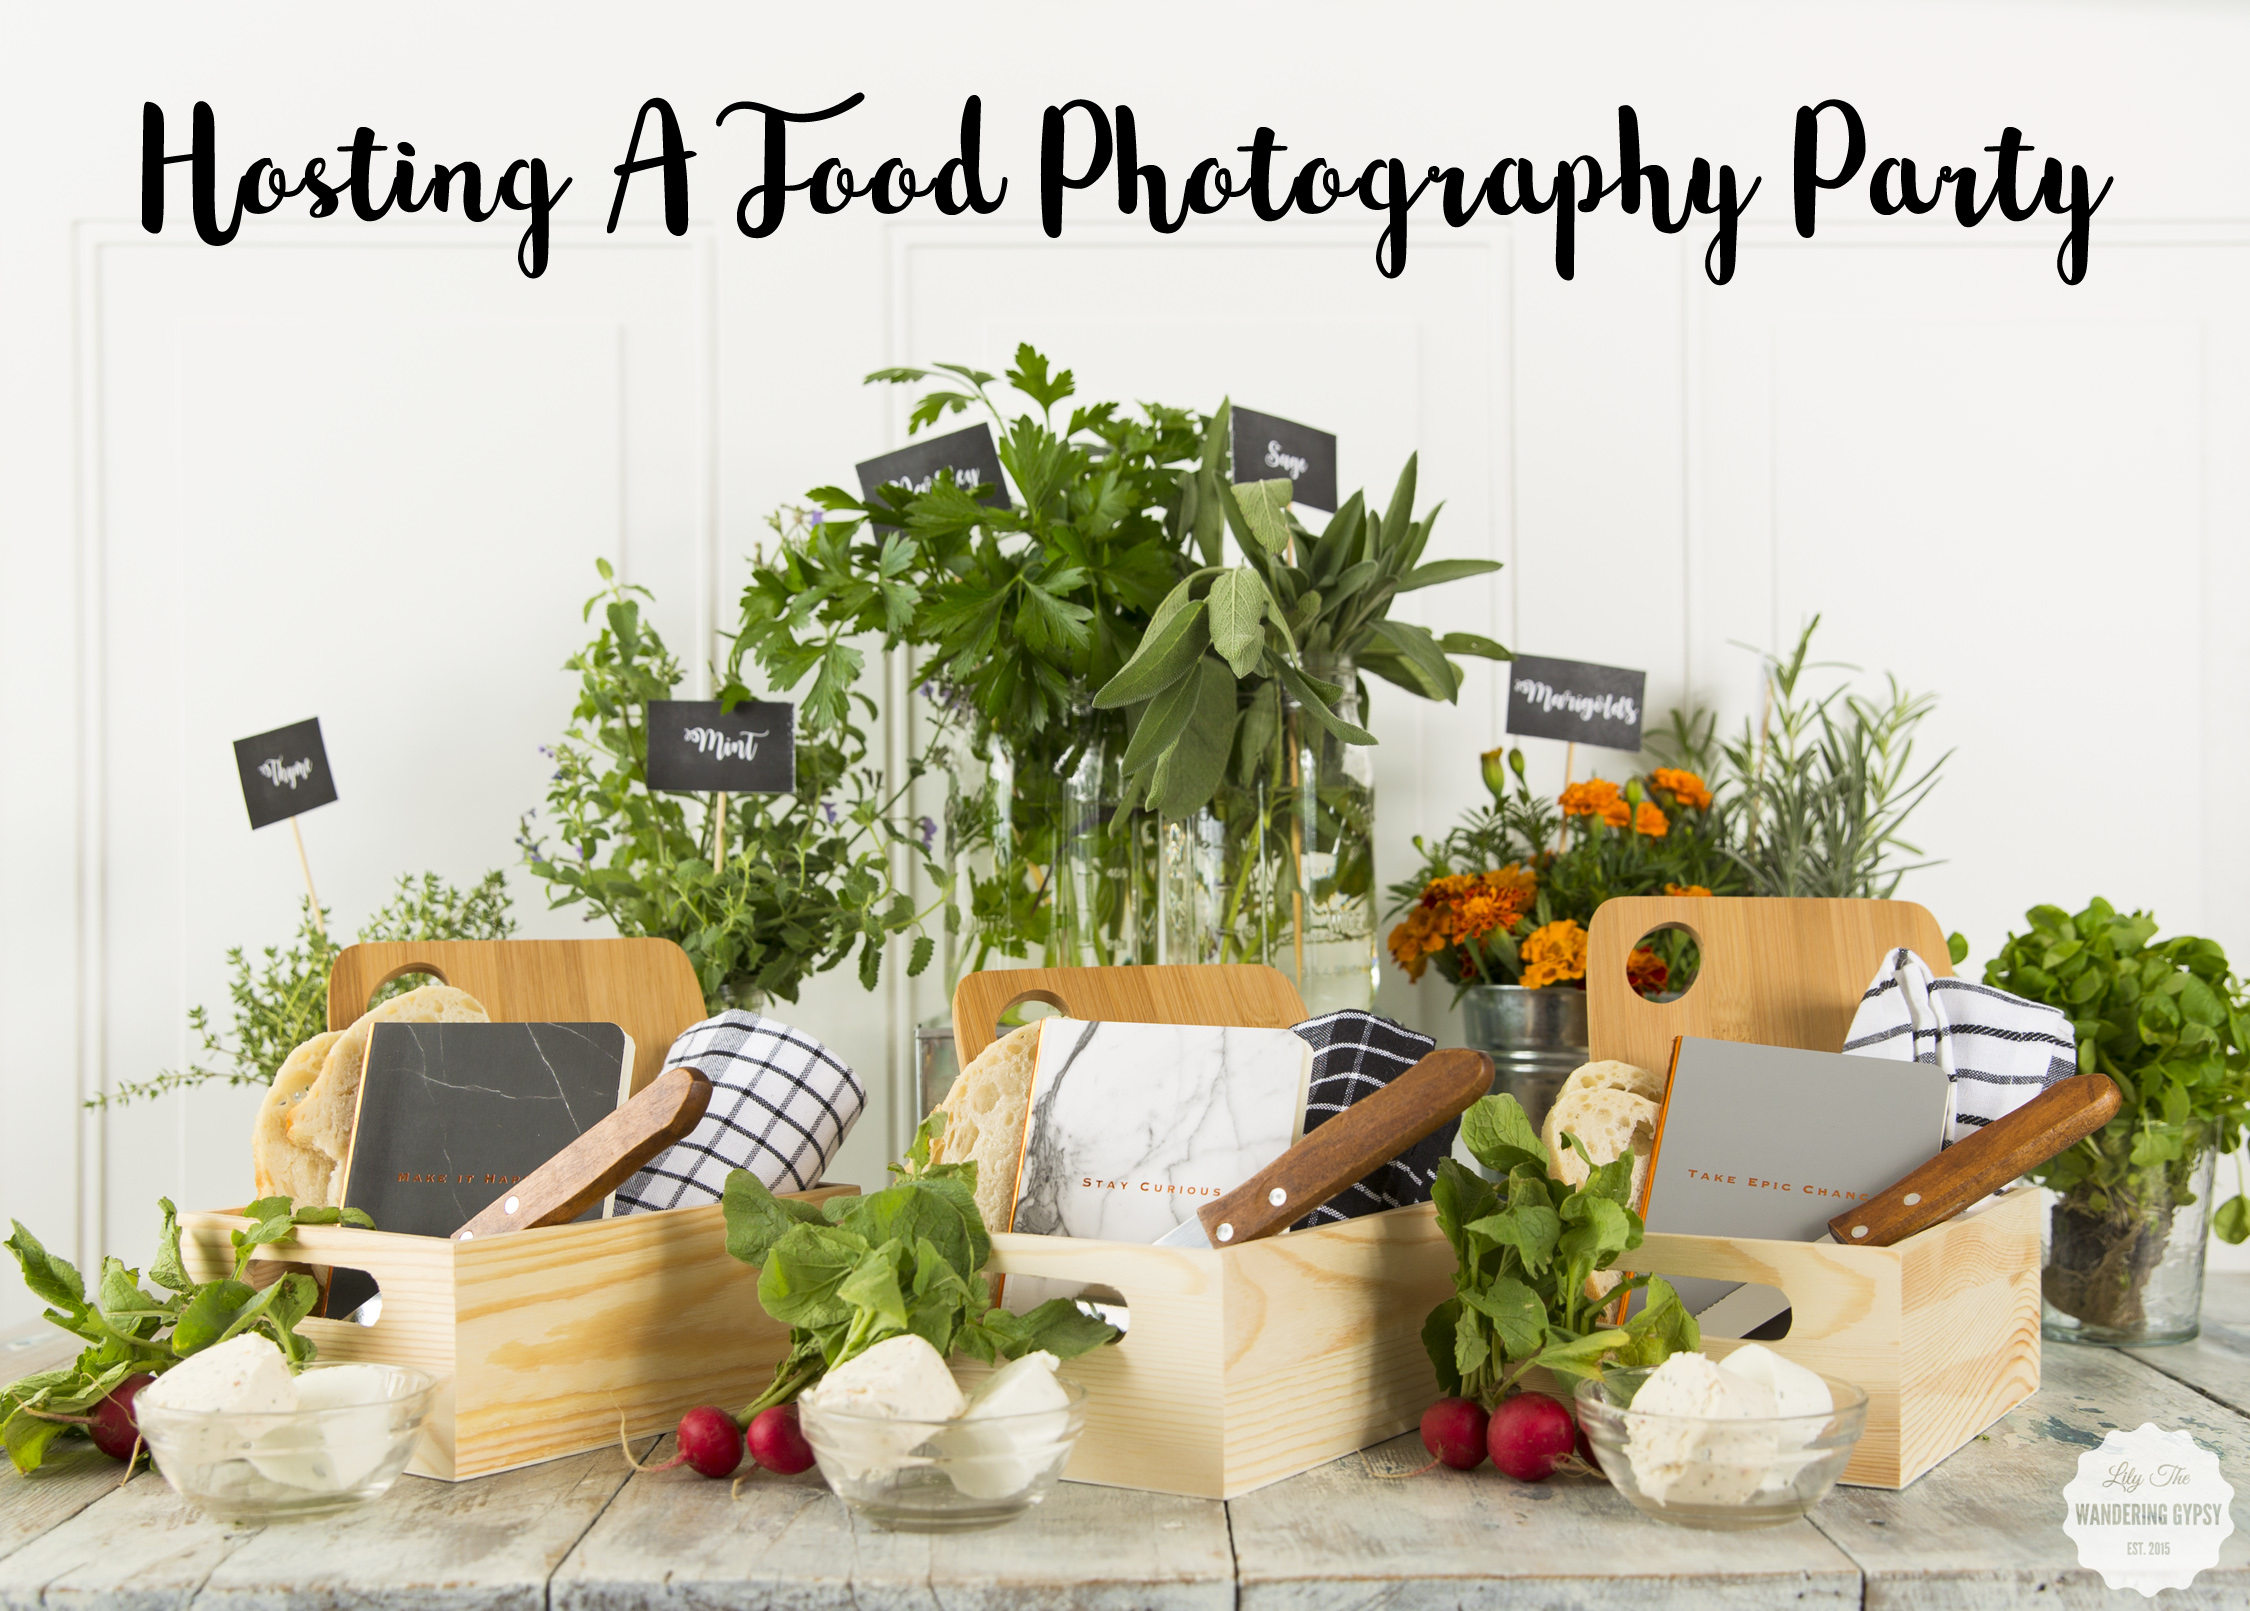 #WhatInconvenience - Hosting A Food Photography Party